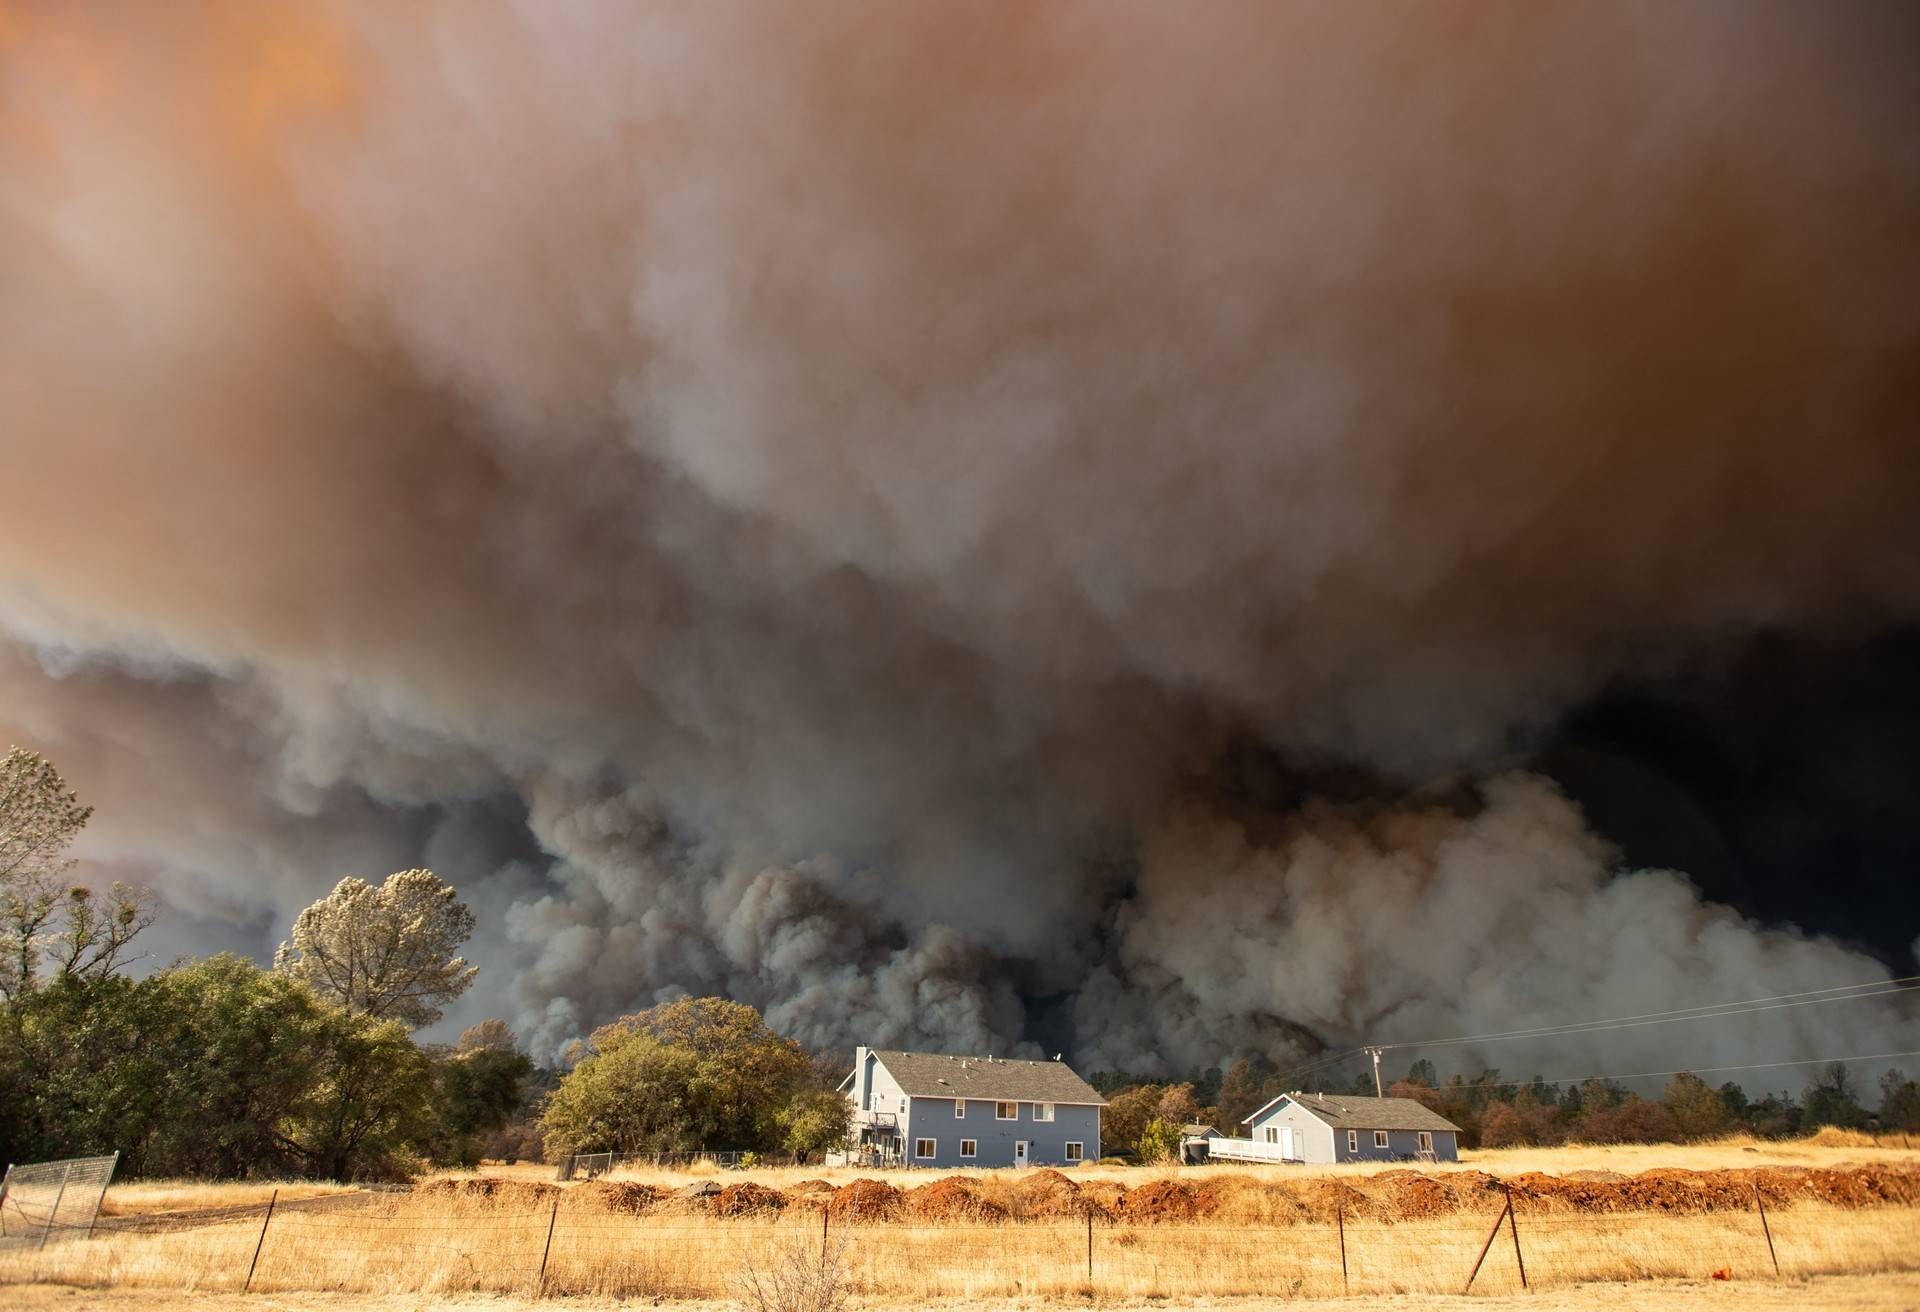 A home is overshadowed by towering smoke plumes as the Camp fire races through town in Paradise, California on November 08, 2018.  Josh Edelson/AFP/Getty Images